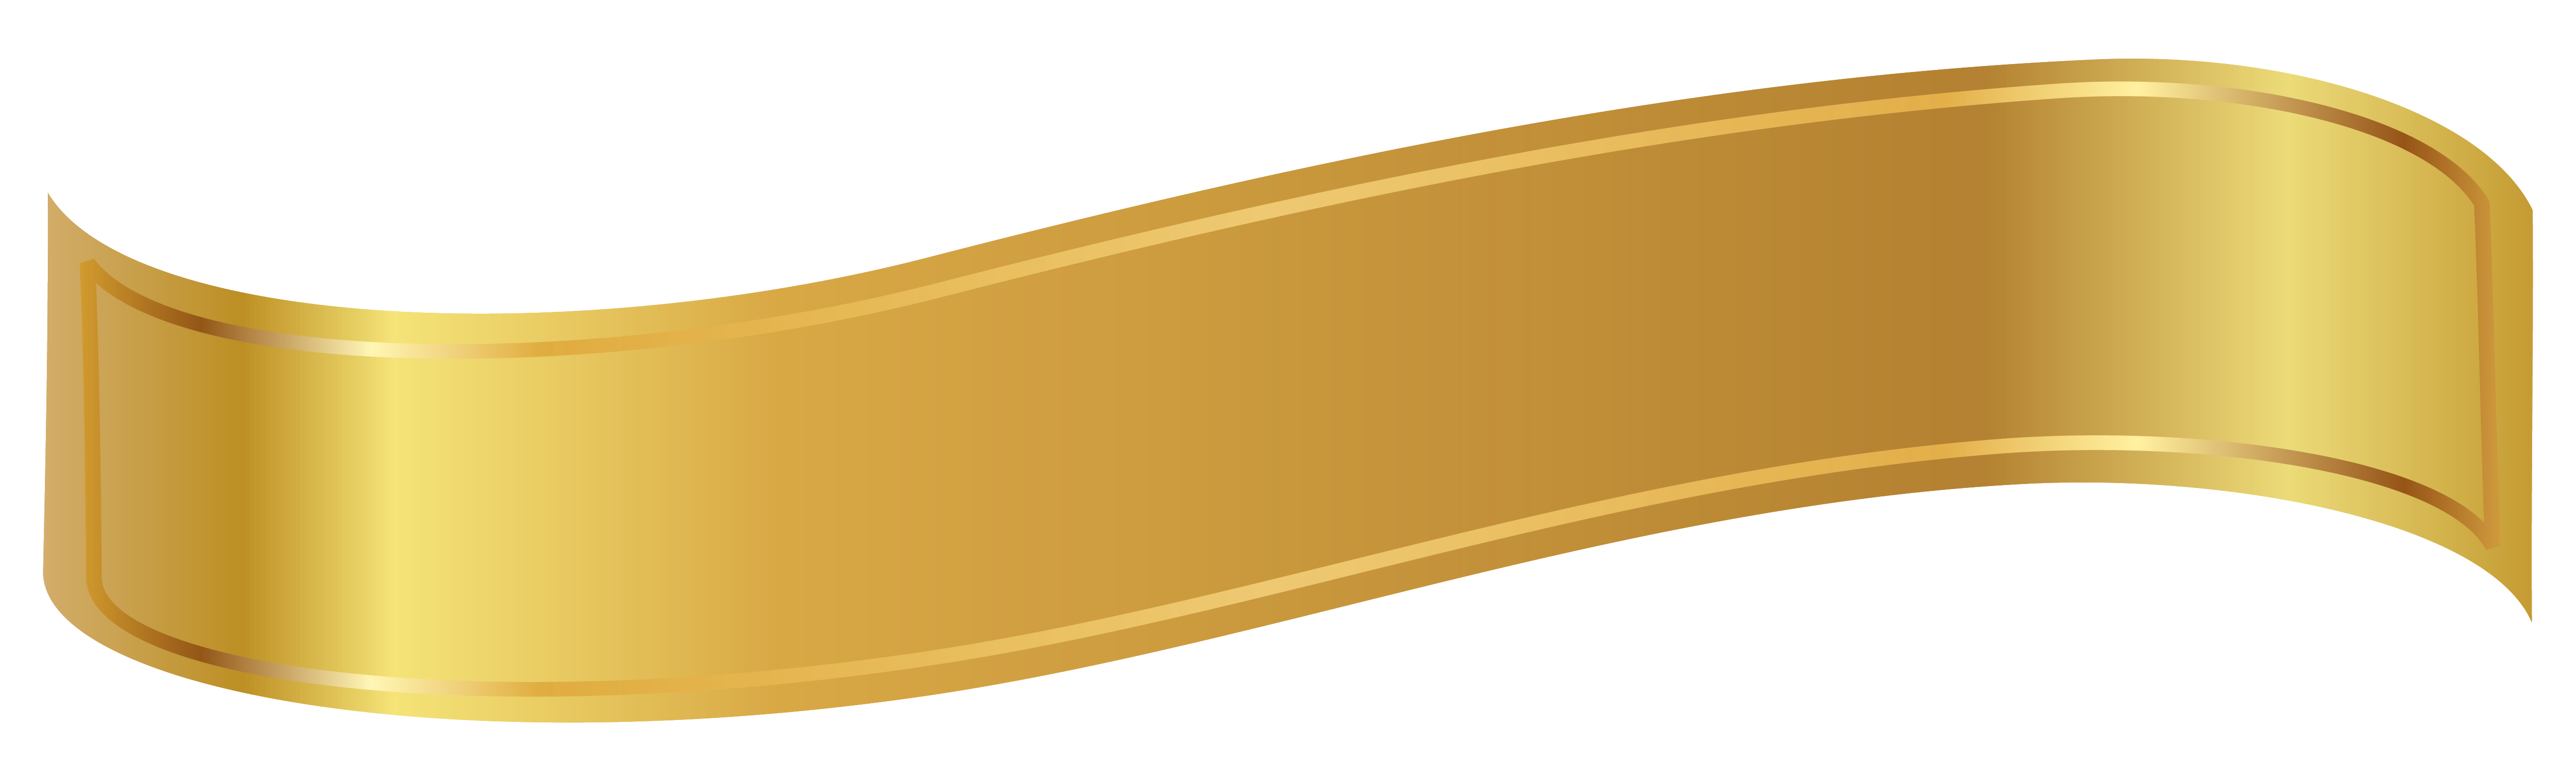 Free Gold Ribbon Cliparts, Download Free Clip Art, Free Clip.